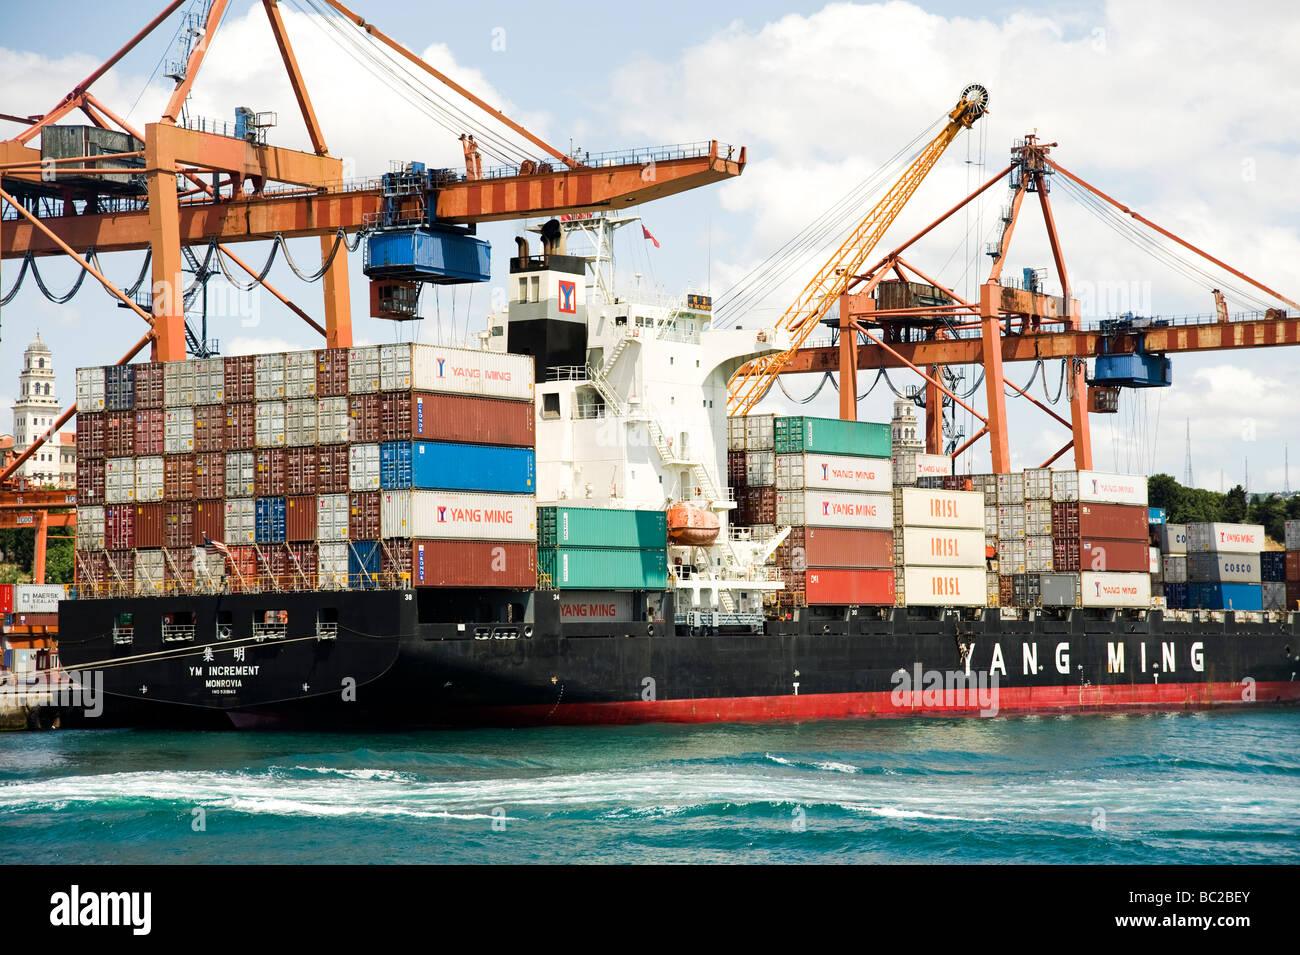 A container ship unloading imported products from China - Stock Image